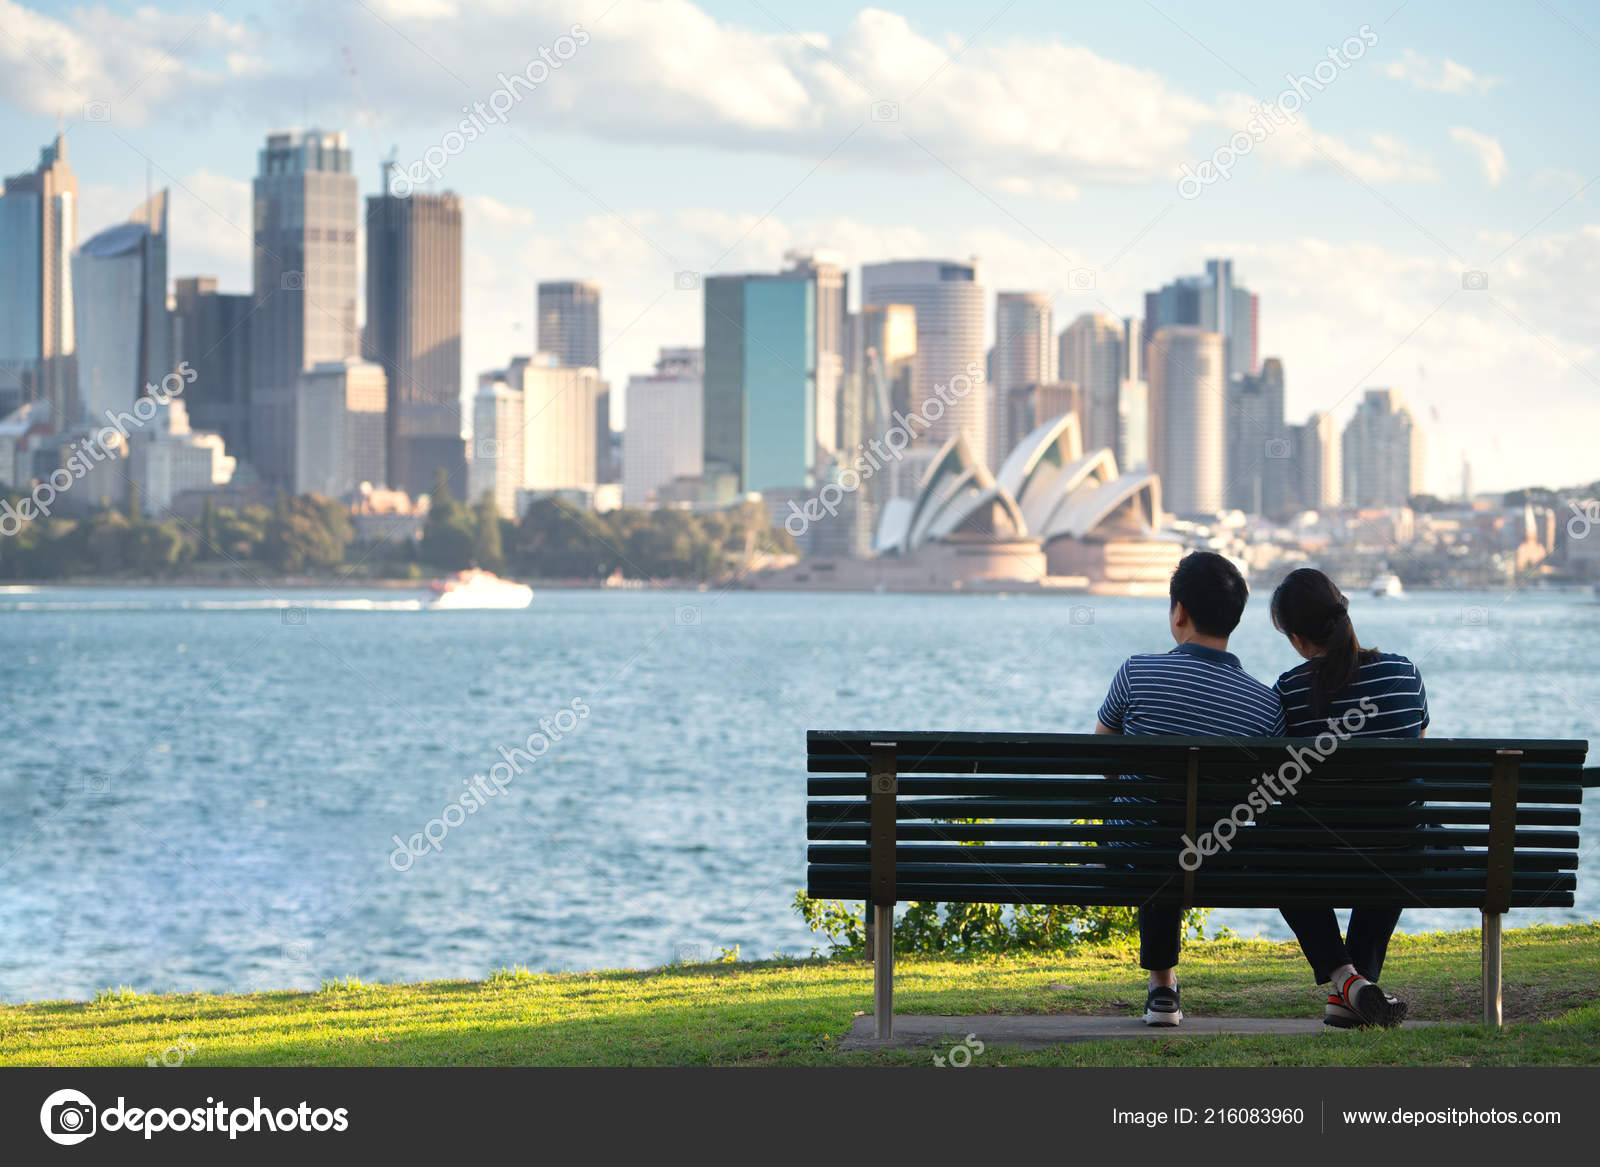 Ideas About Outdoor Park Benches Sydney